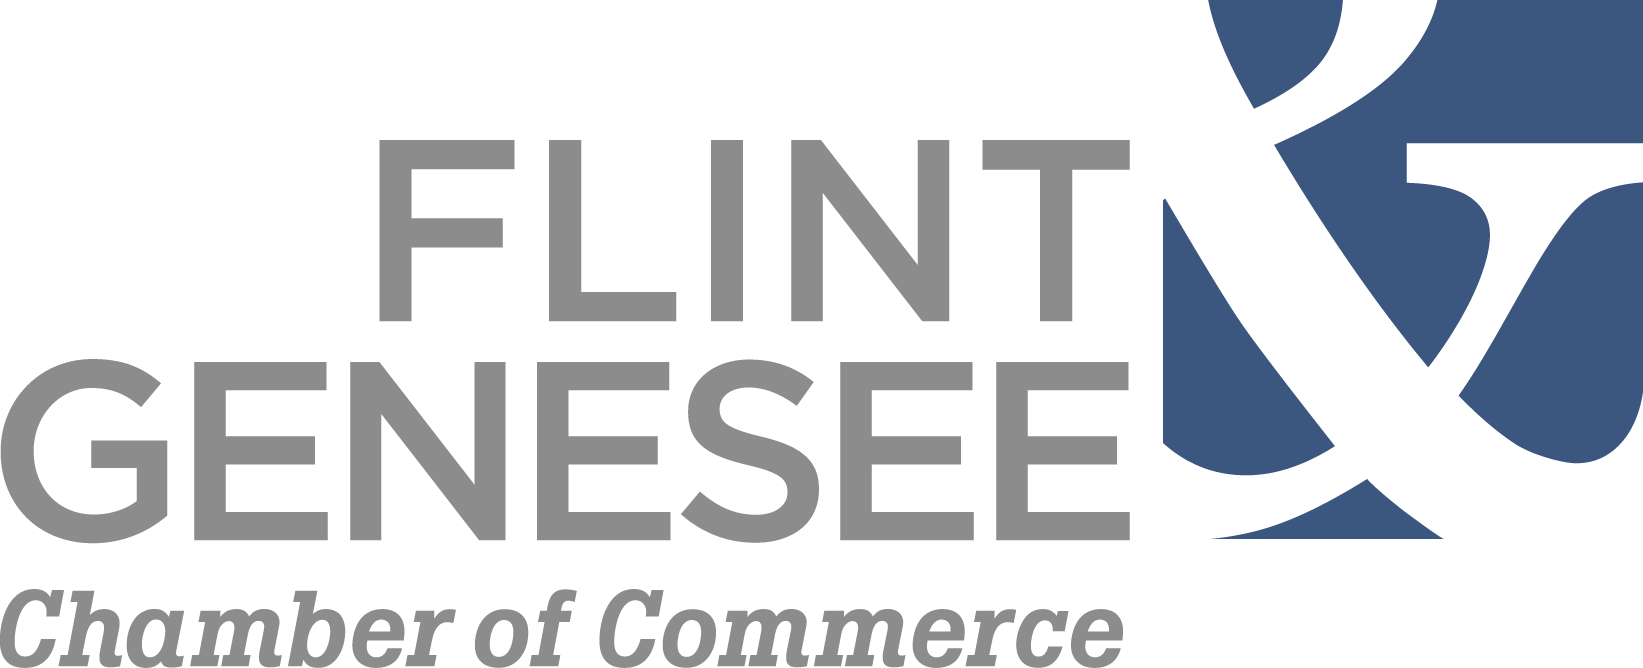 Flint & Genesee Chamber of Commerce logo